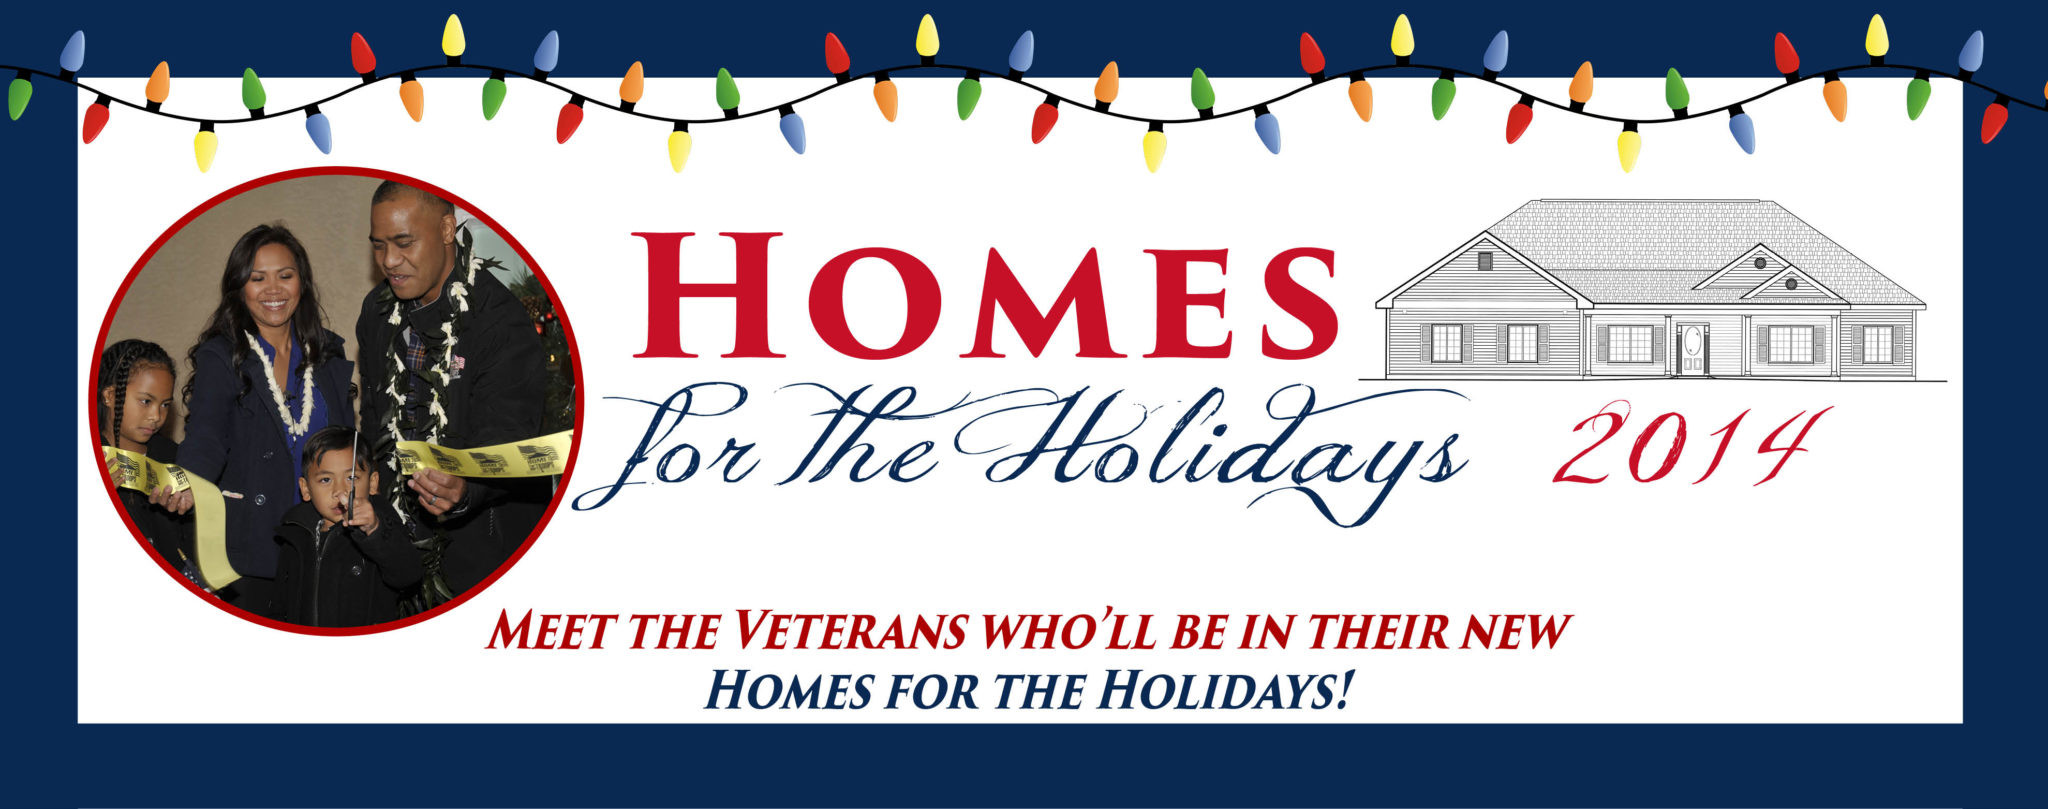 Homes for Our Troops to Give the Gift of a Home to 10 Veterans and their Families this Holiday Season